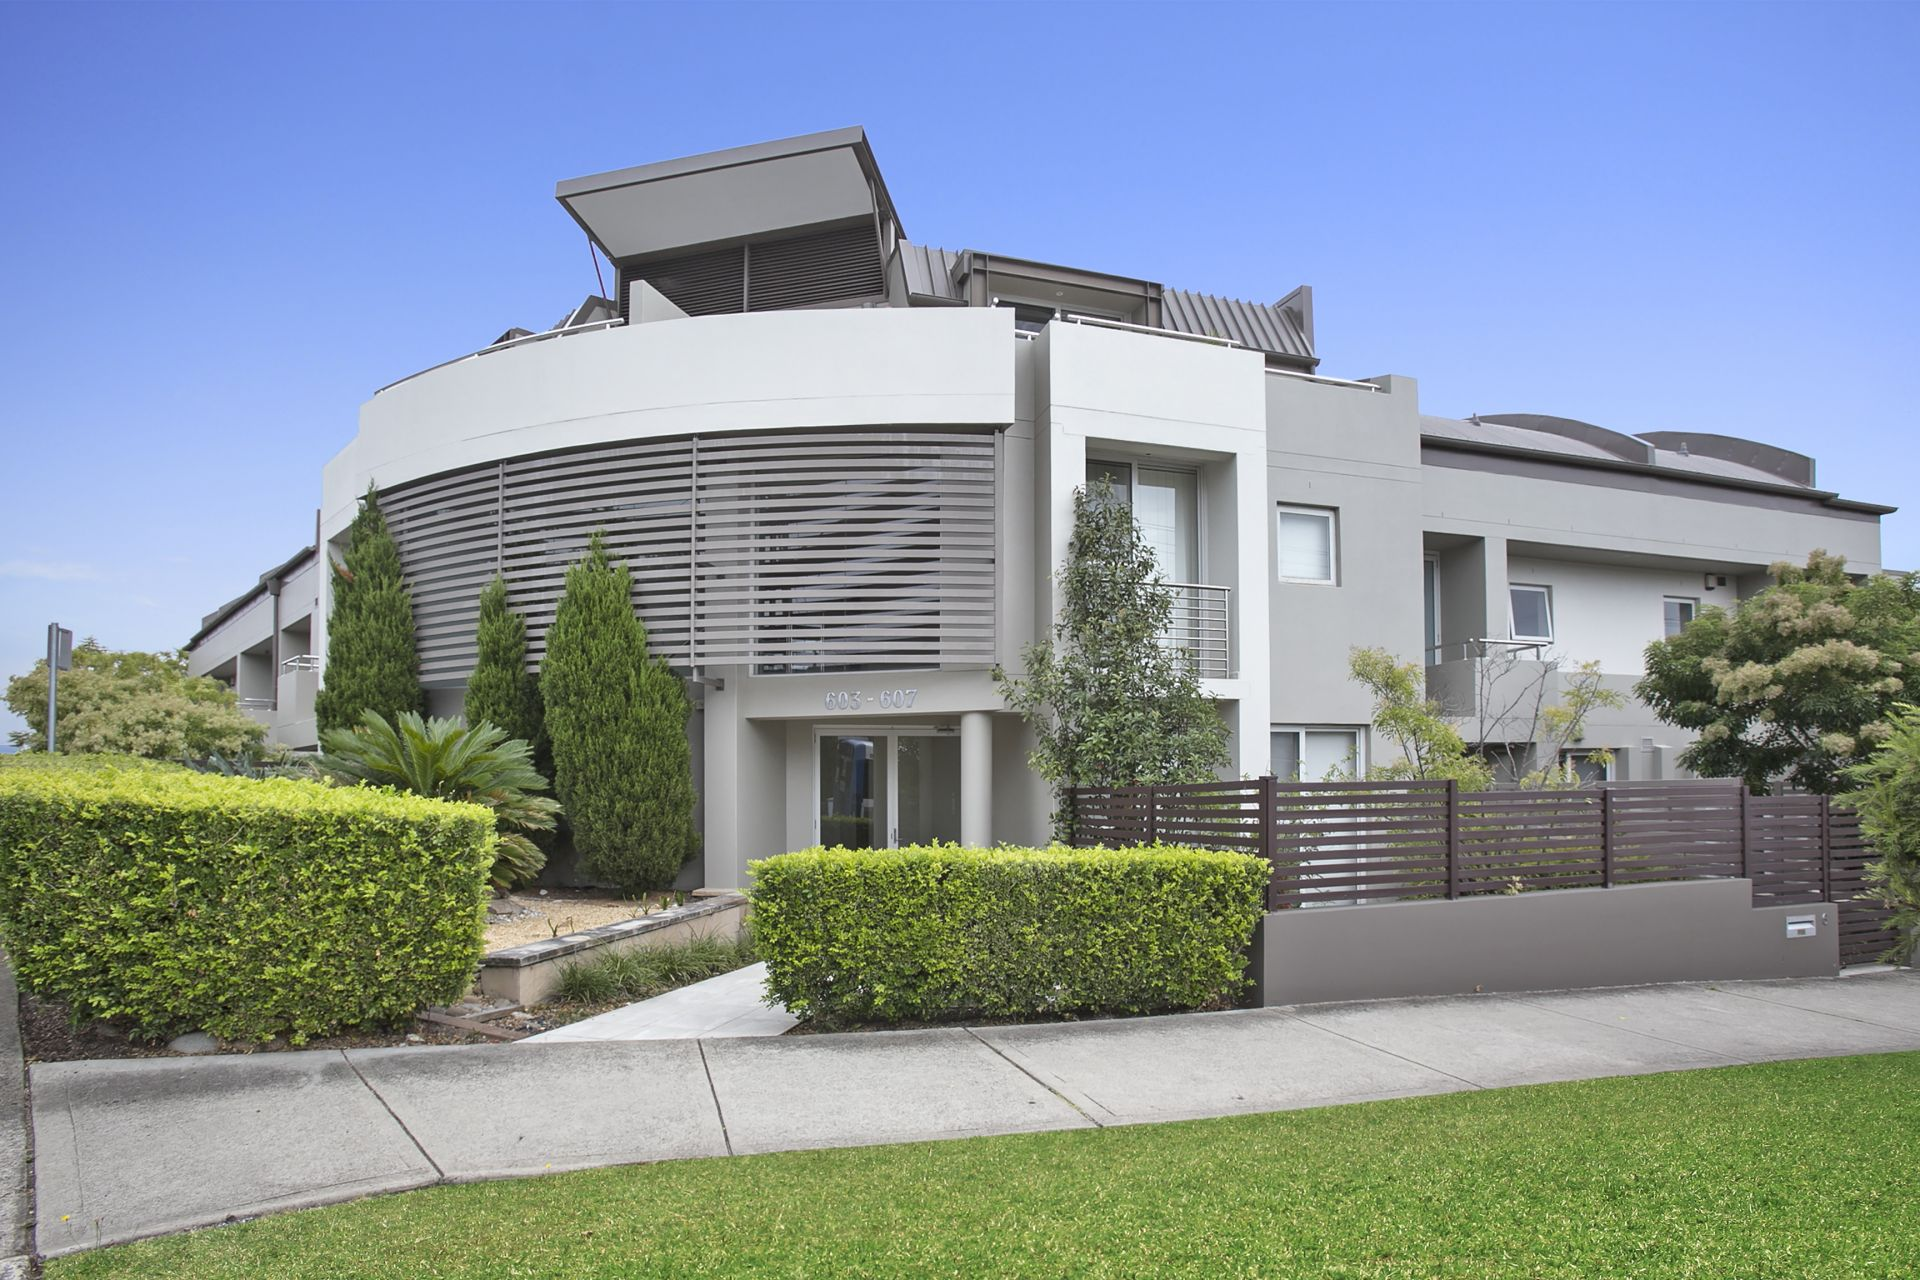 9/603-607 Great North Road, Abbotsford